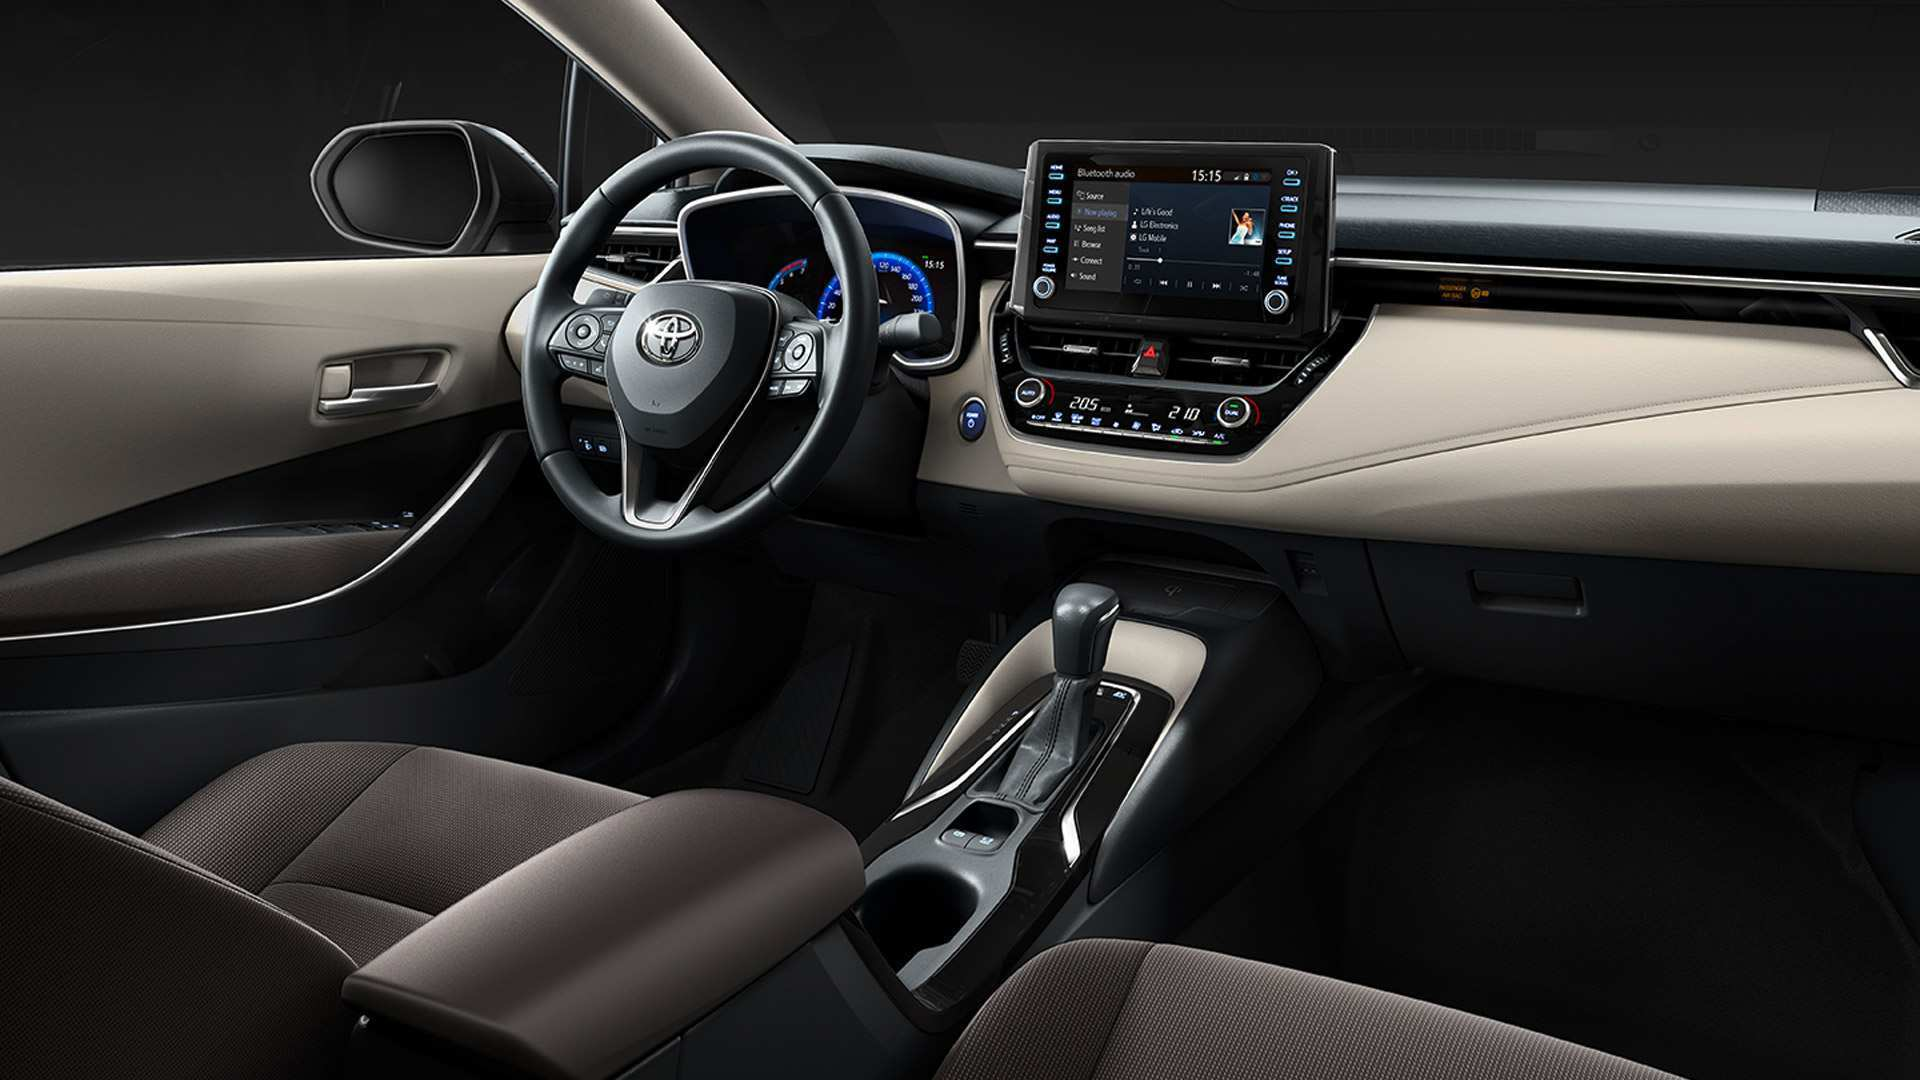 87 Great The Toyota Legend 50 2019 New Interior Release for The Toyota Legend 50 2019 New Interior